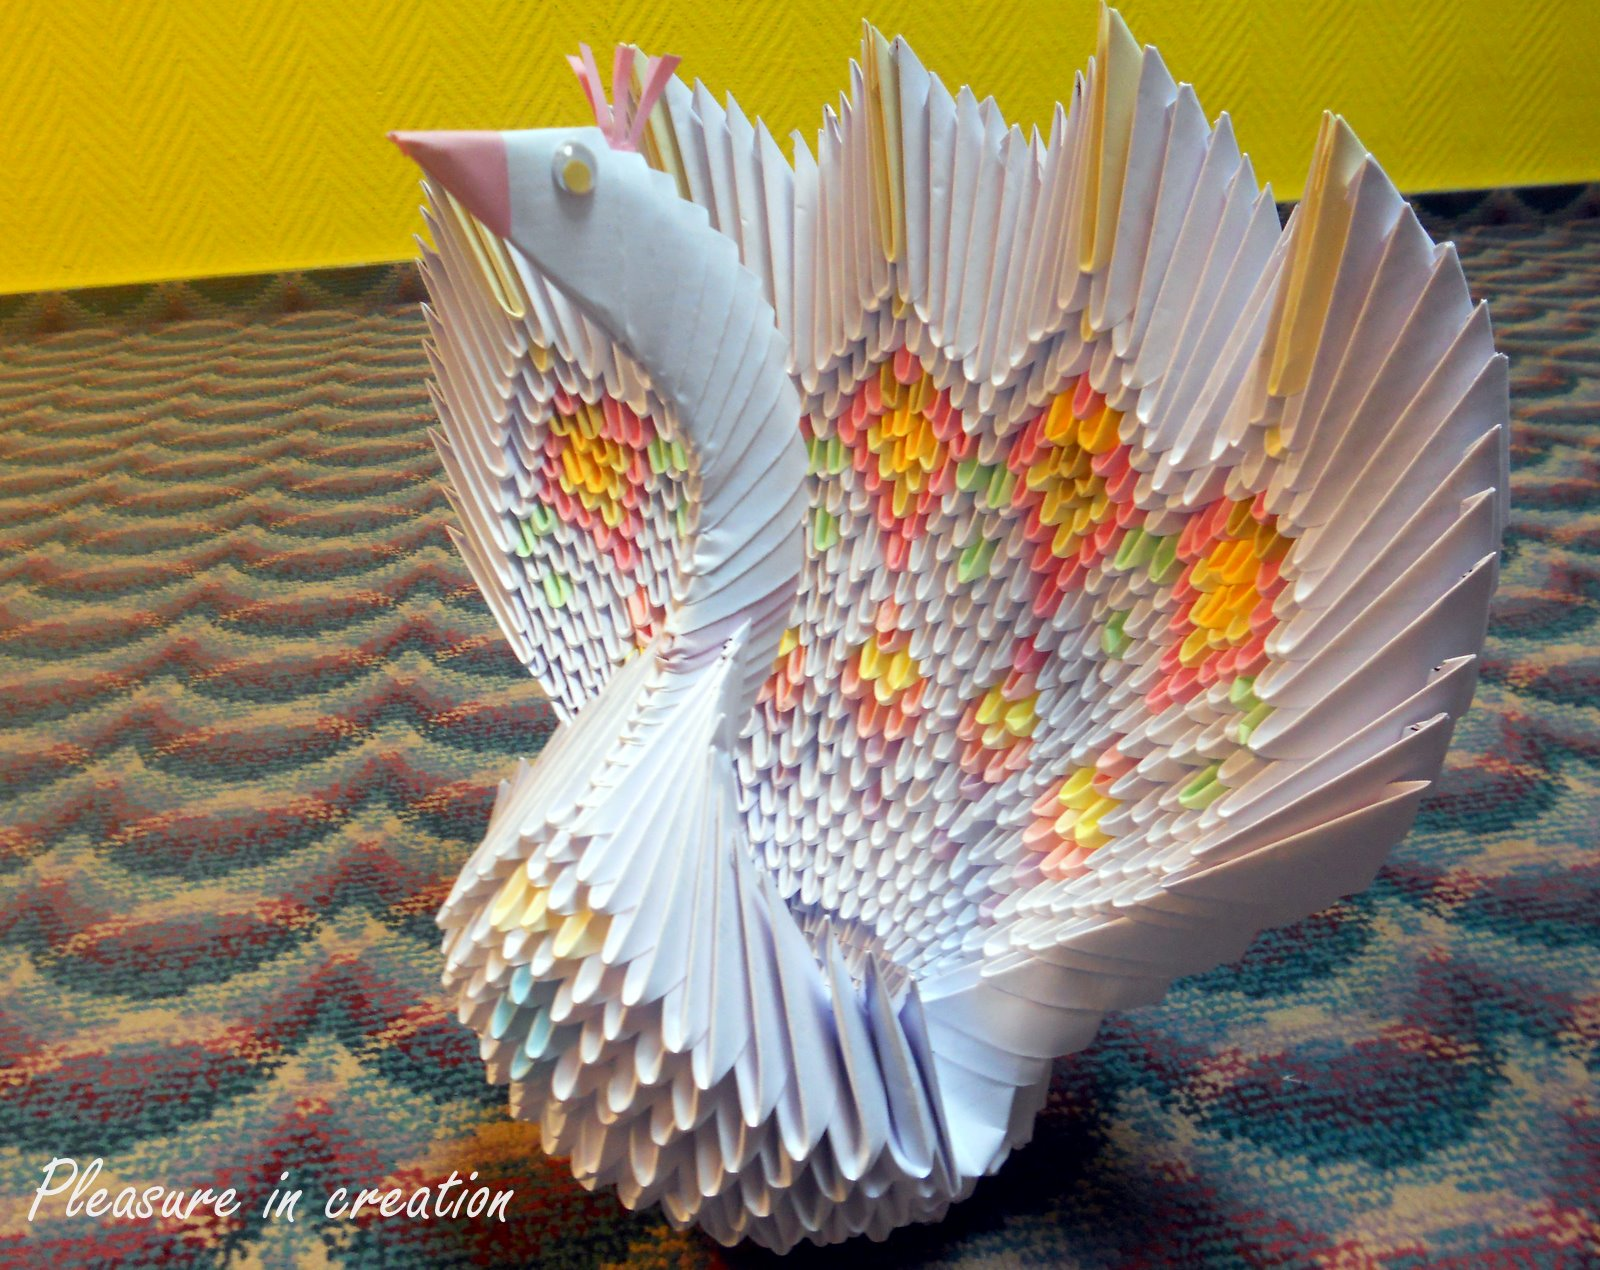 3d Origami Peacock Instructions - photo#27